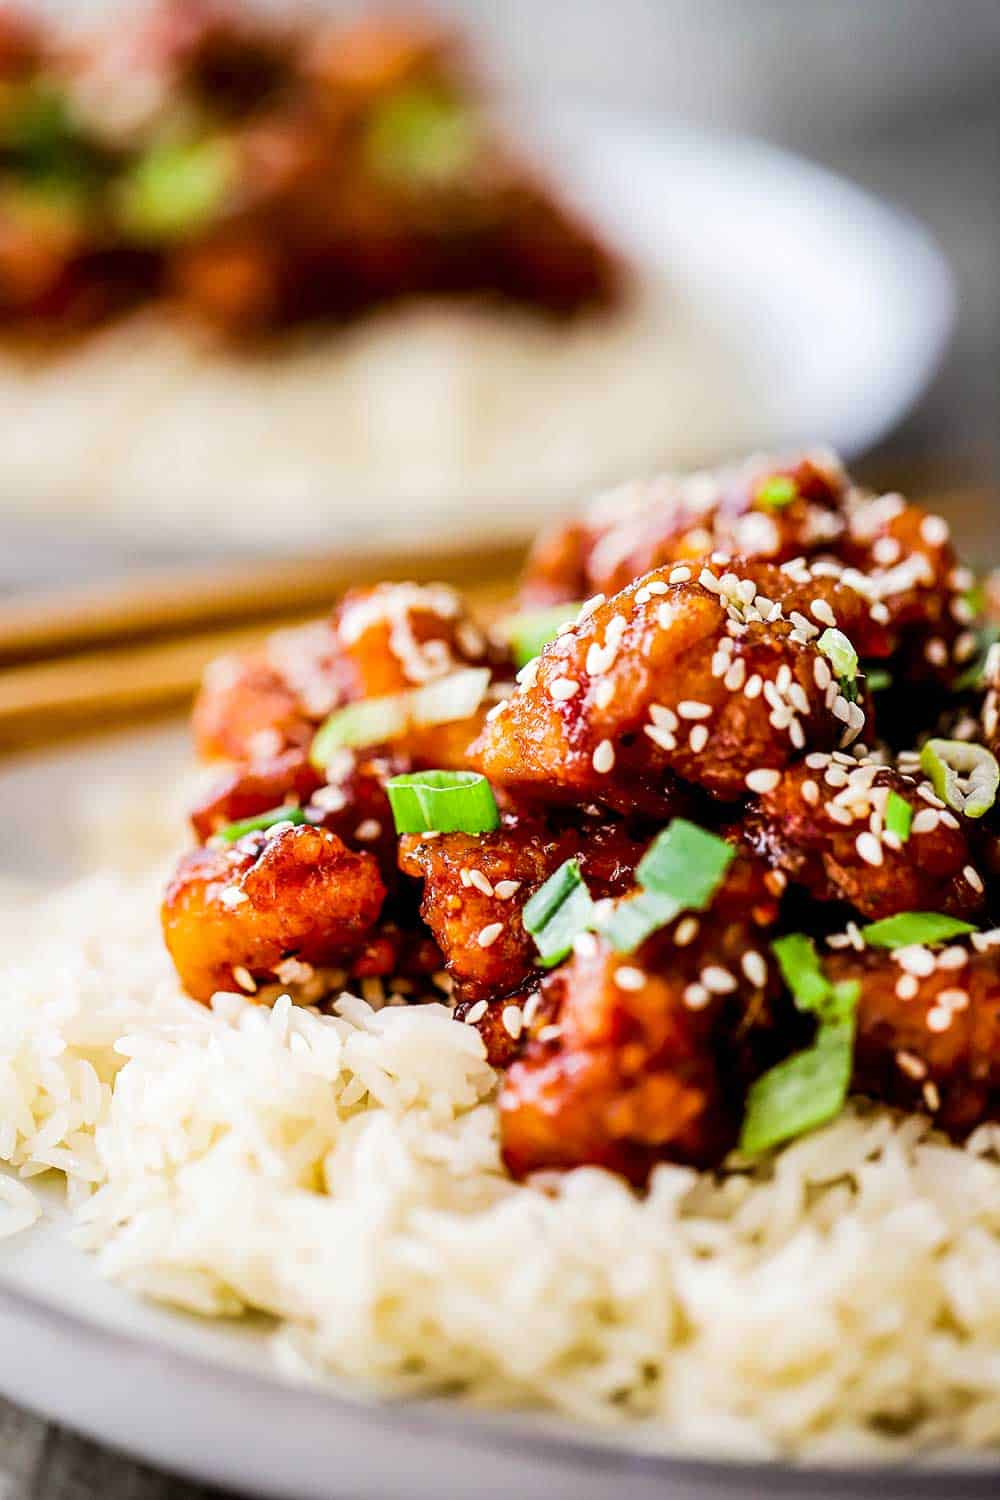 A close-up view of plate filled with sesame chicken on top of a bed of rice.